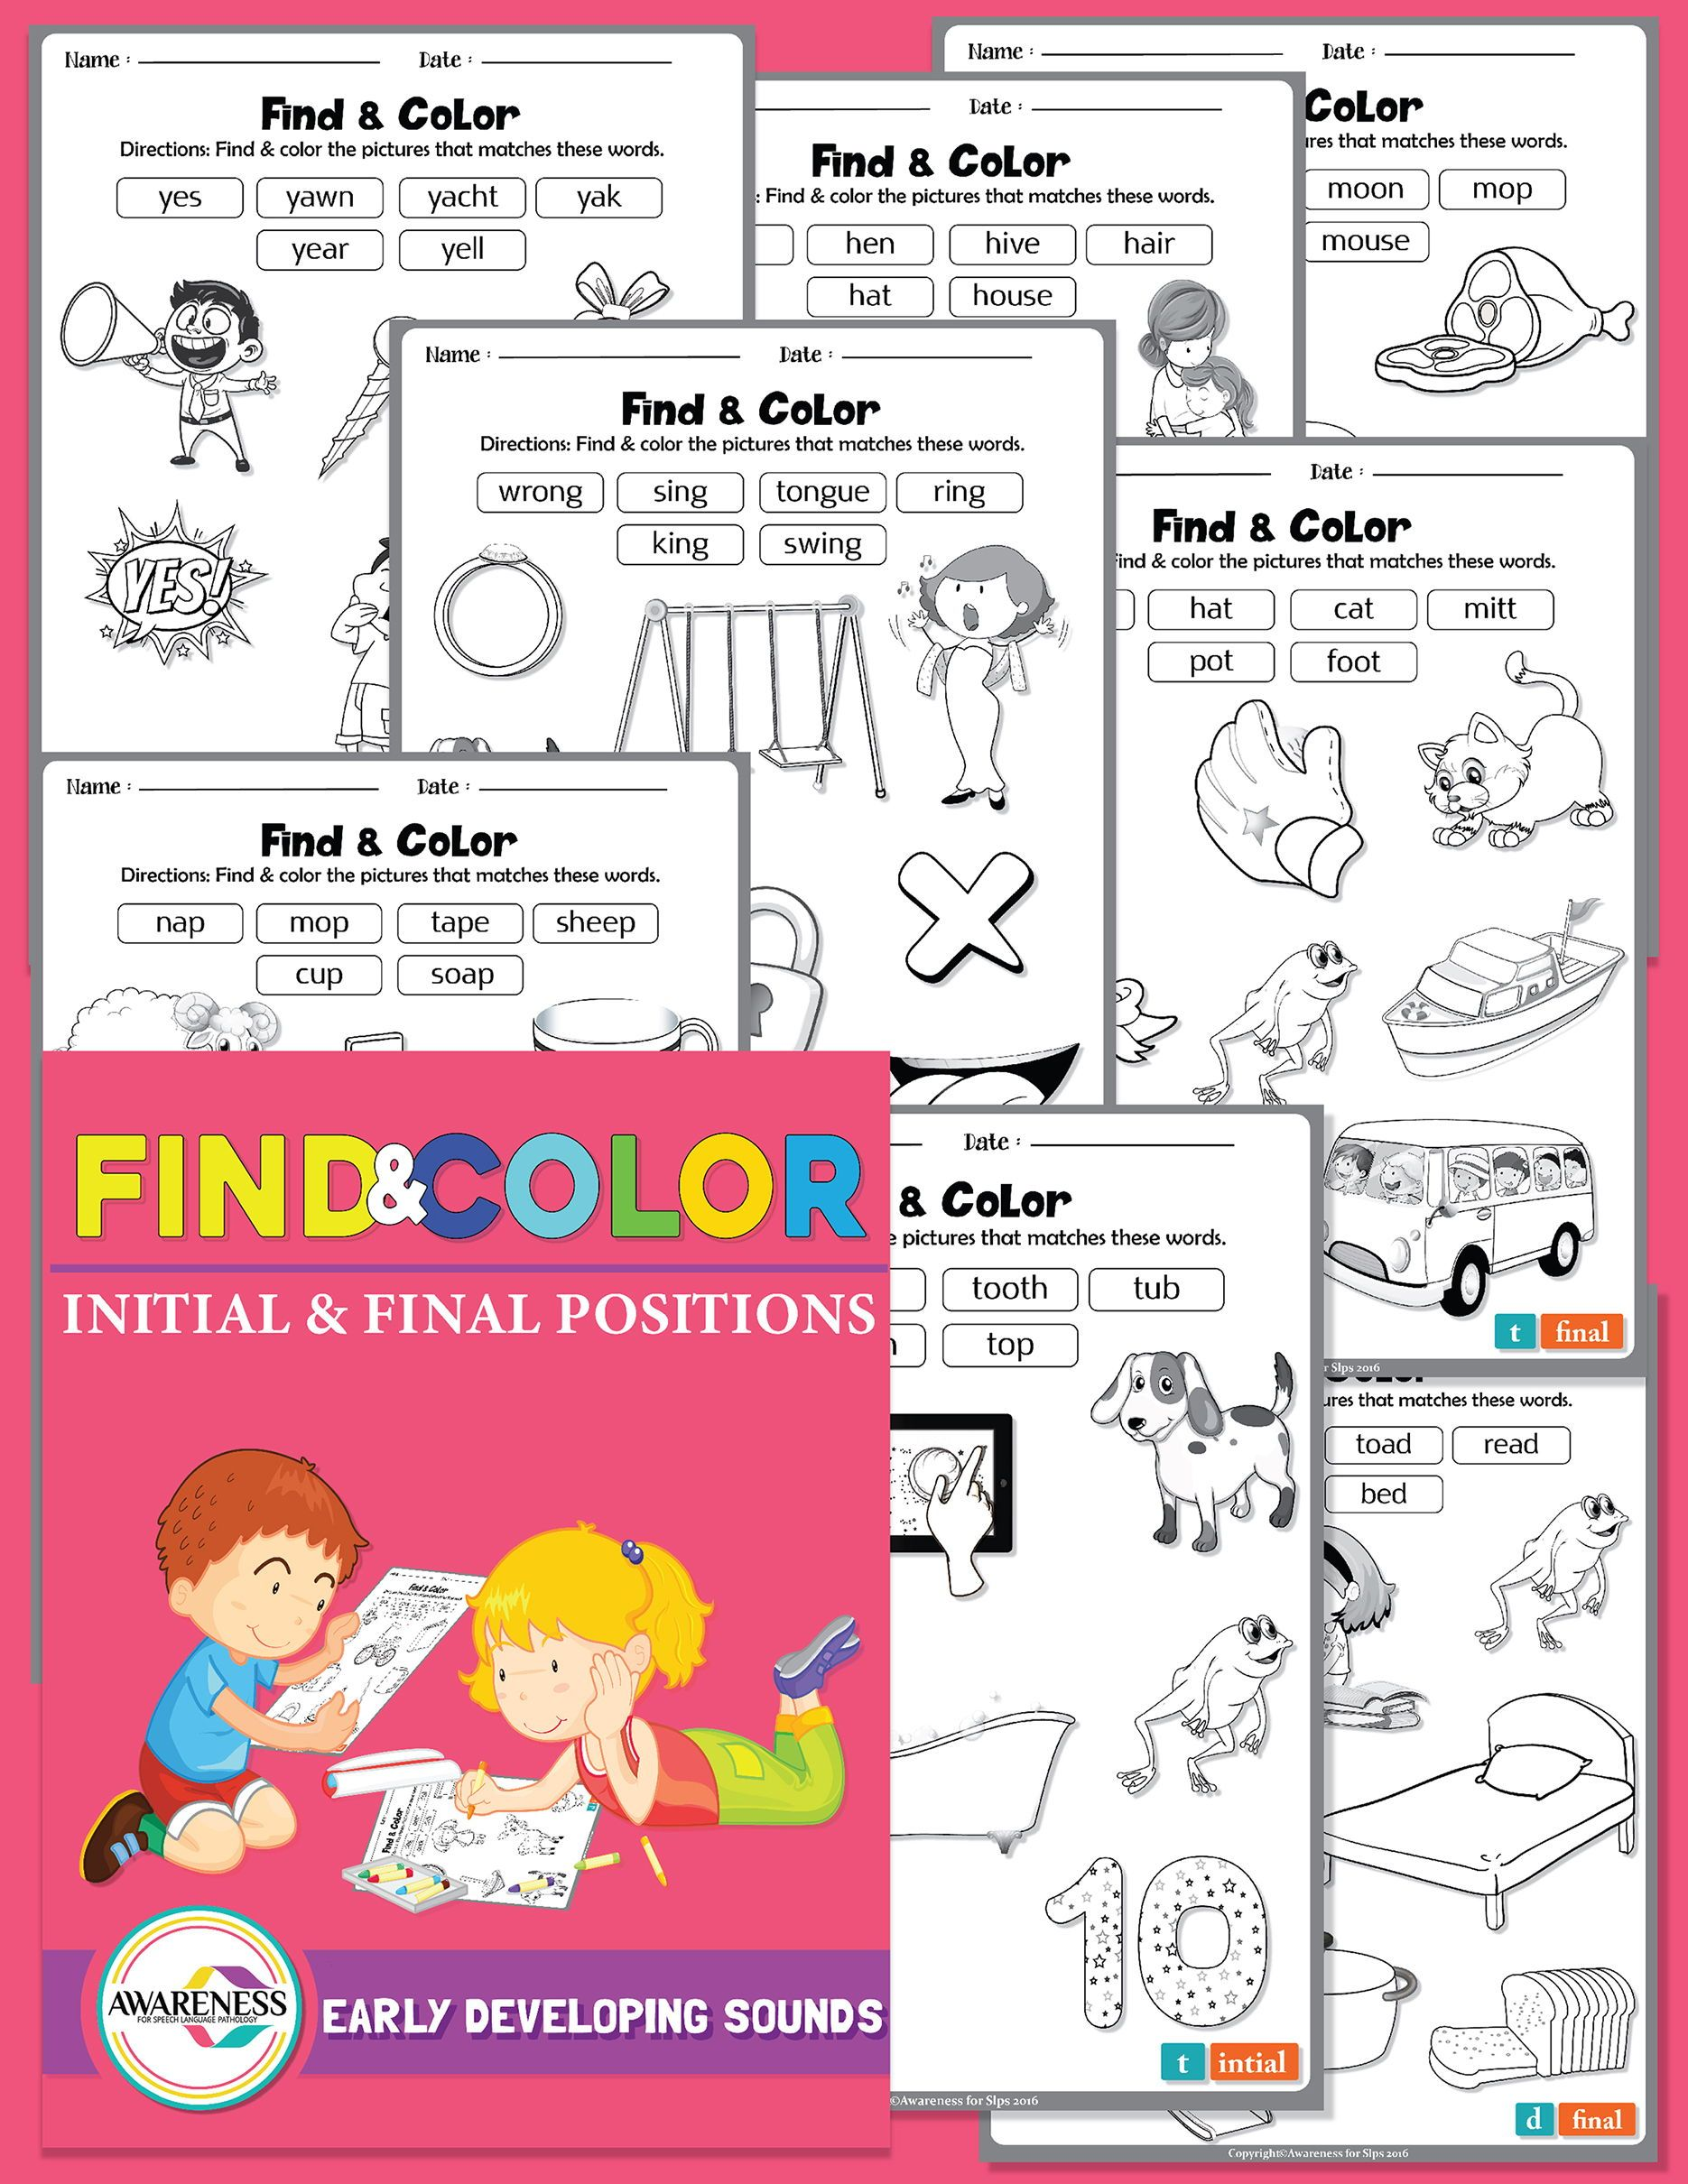 Find Color Phonological Process Early Developing Sounds Slp